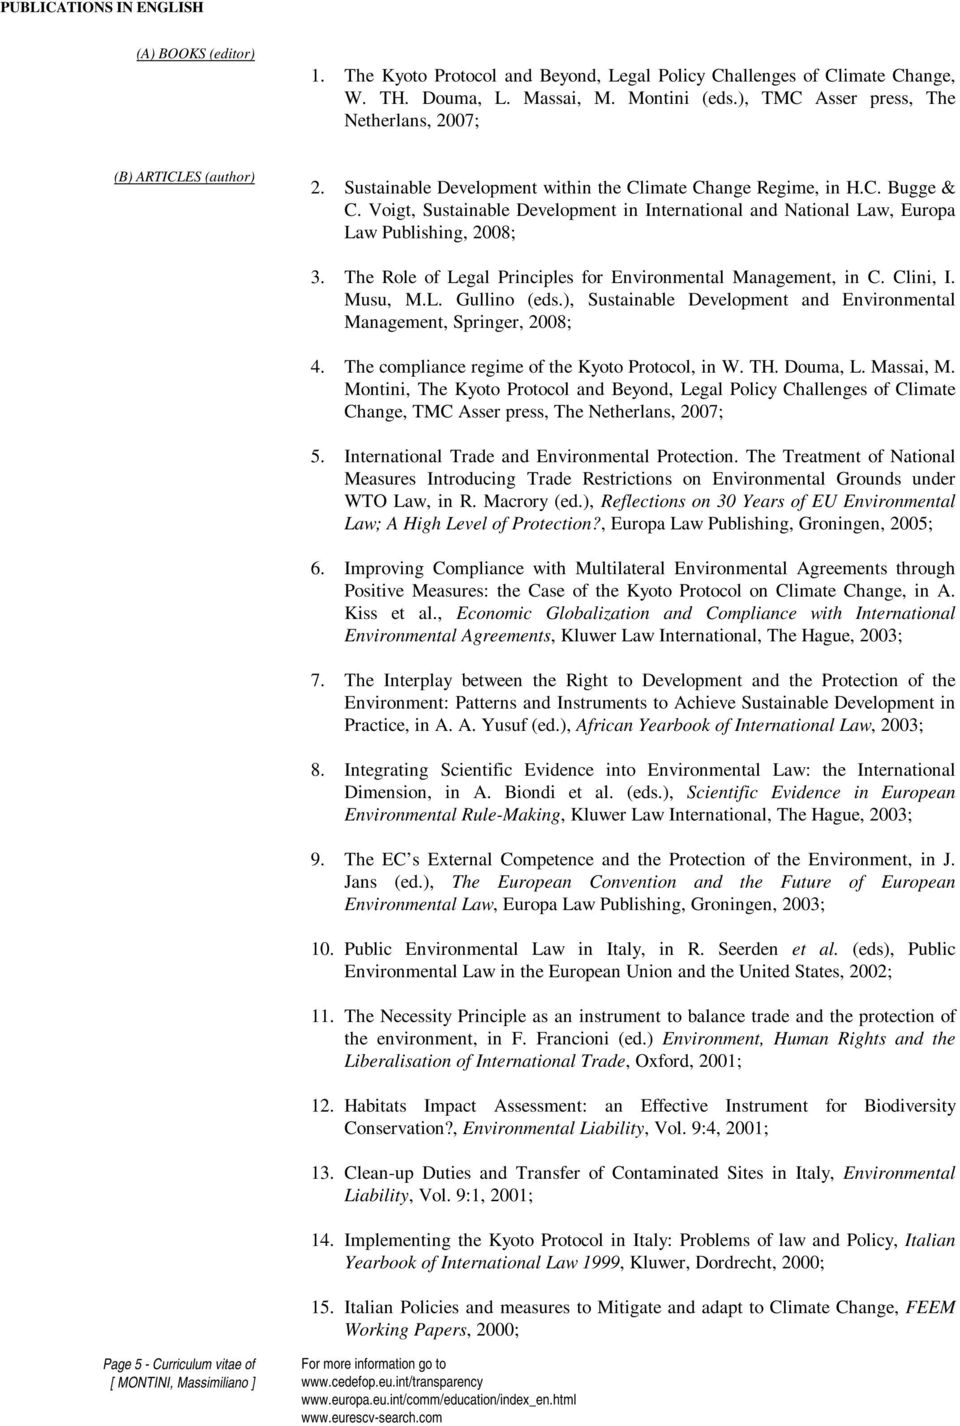 Voigt, Sustainable Development in International and National Law, Europa Law Publishing, 2008; 3. The Role of Legal Principles for Environmental Management, in C. Clini, I. Musu, M.L. Gullino (eds.